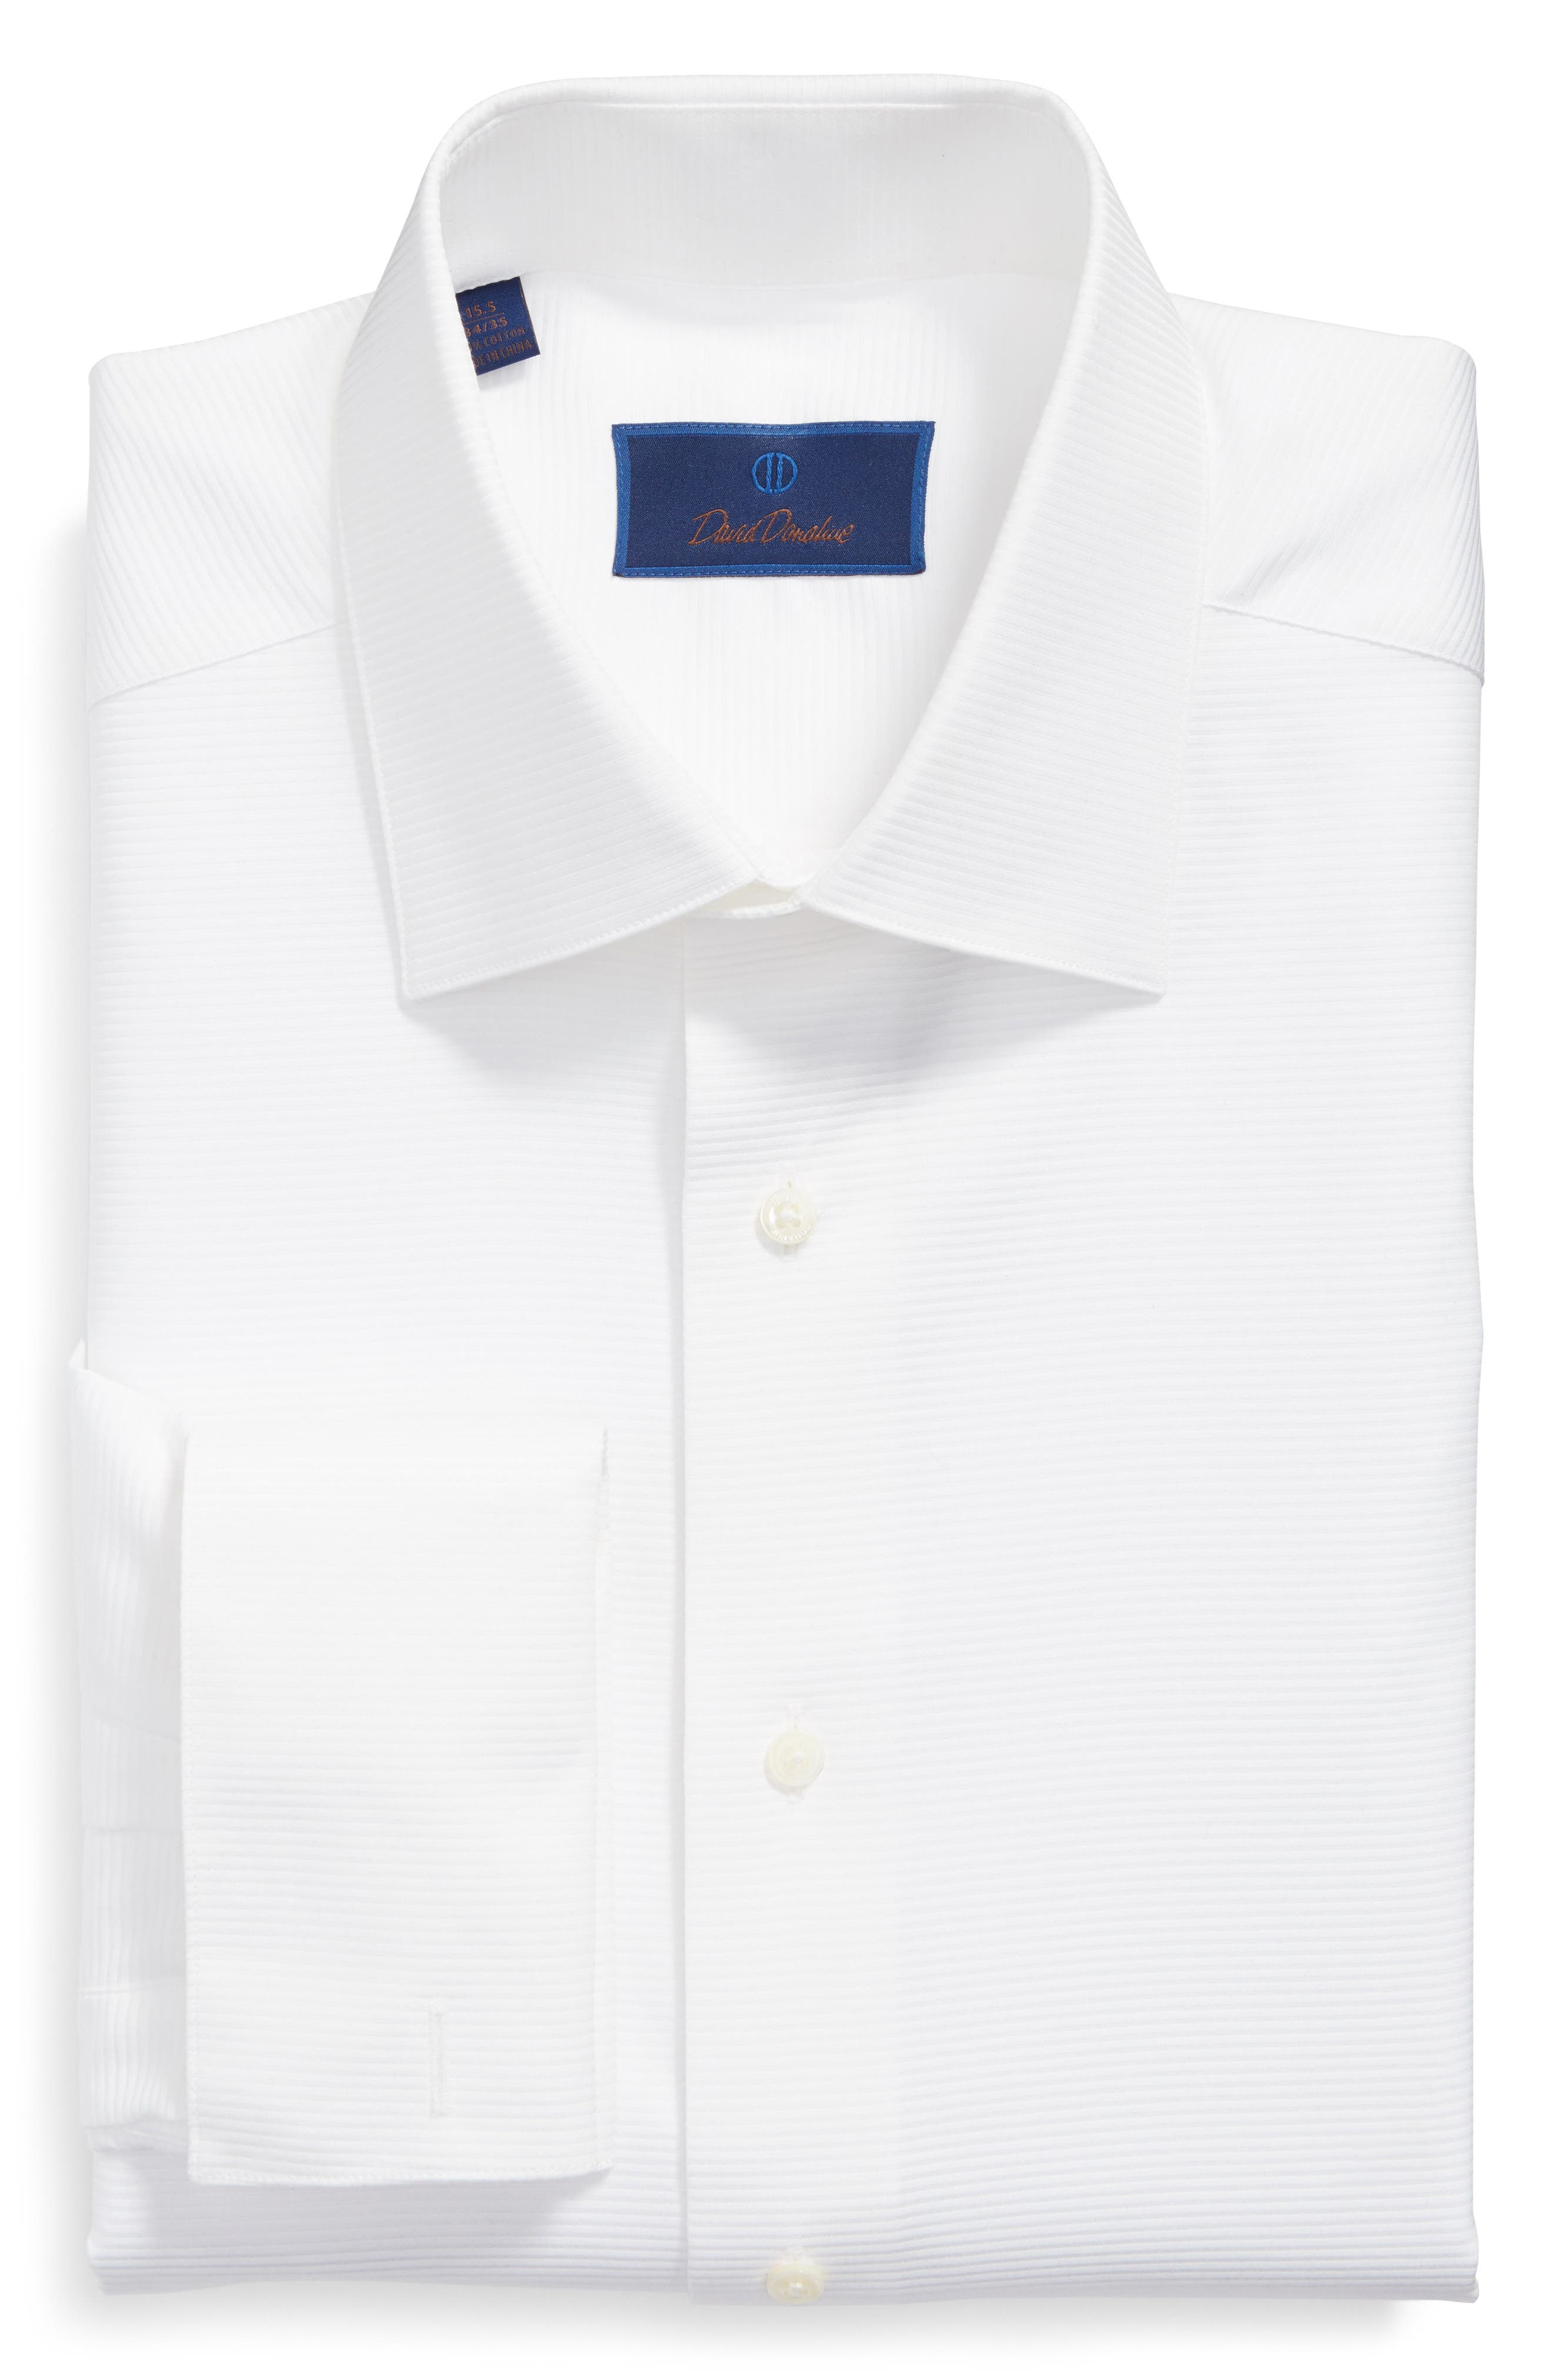 Main Image - David Donahue Horizontal Twill Regular Fit Tuxedo Shirt